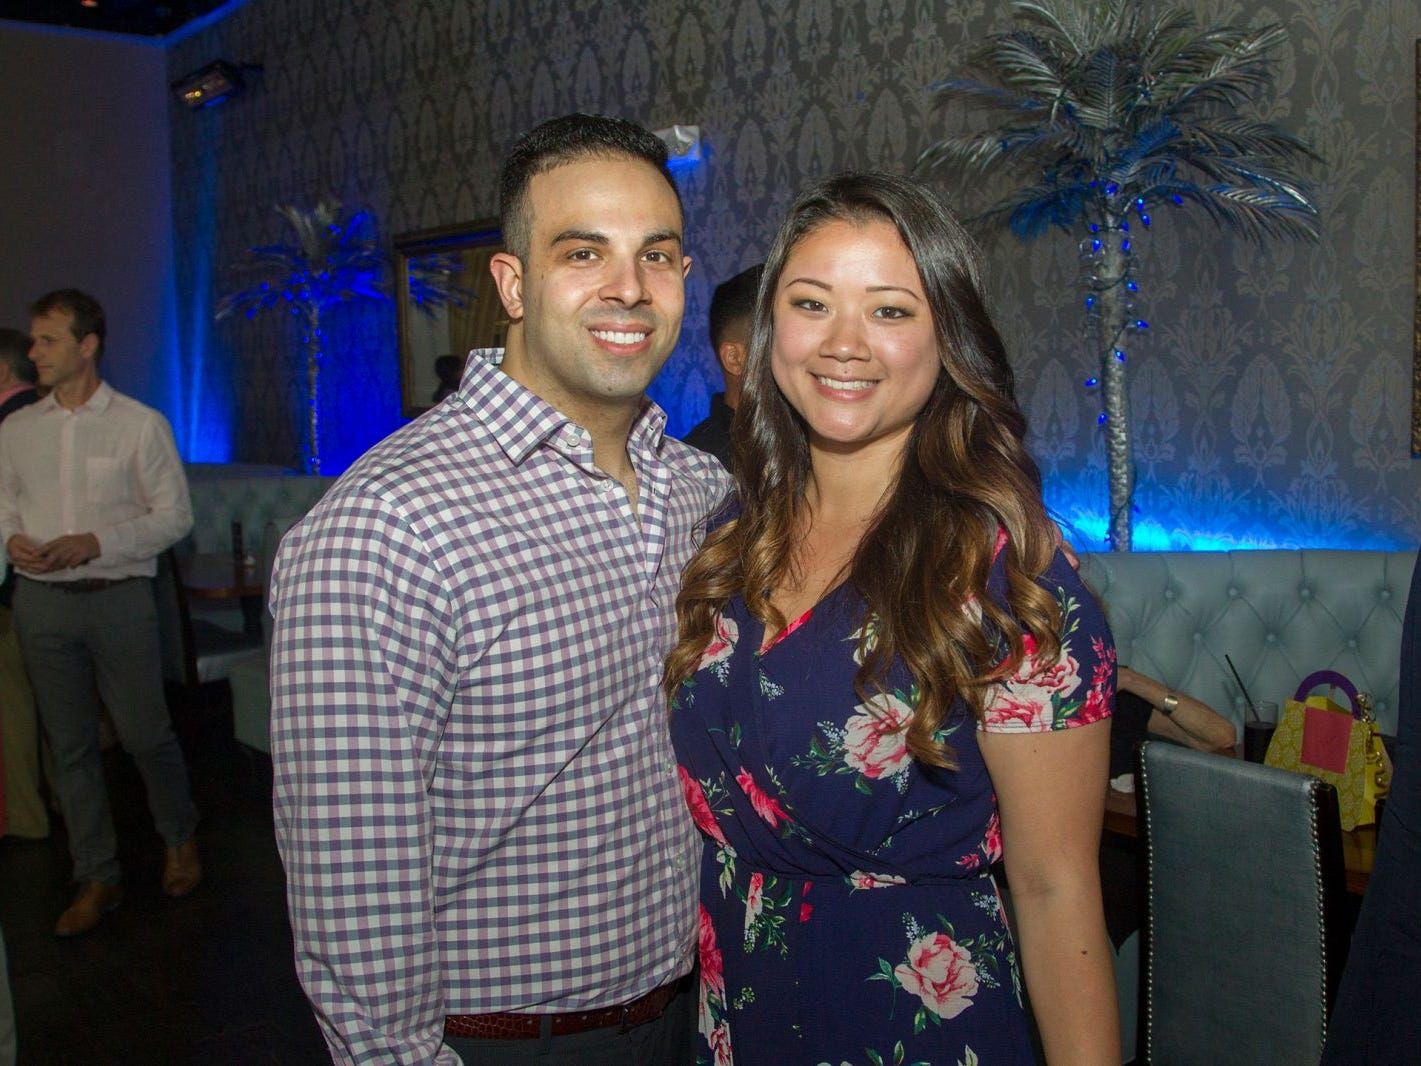 Craig Baraole and Aleyna Yamaguchi. Summer Samba Night benefitting Tackle Kids Cancer hosted by Cara Robles, Luis Robles (NY Red Bulls Goalkeeper), Jennifer Farber, and Dr. Michael Farber at Son Cubano in West New York. 08/08/2018